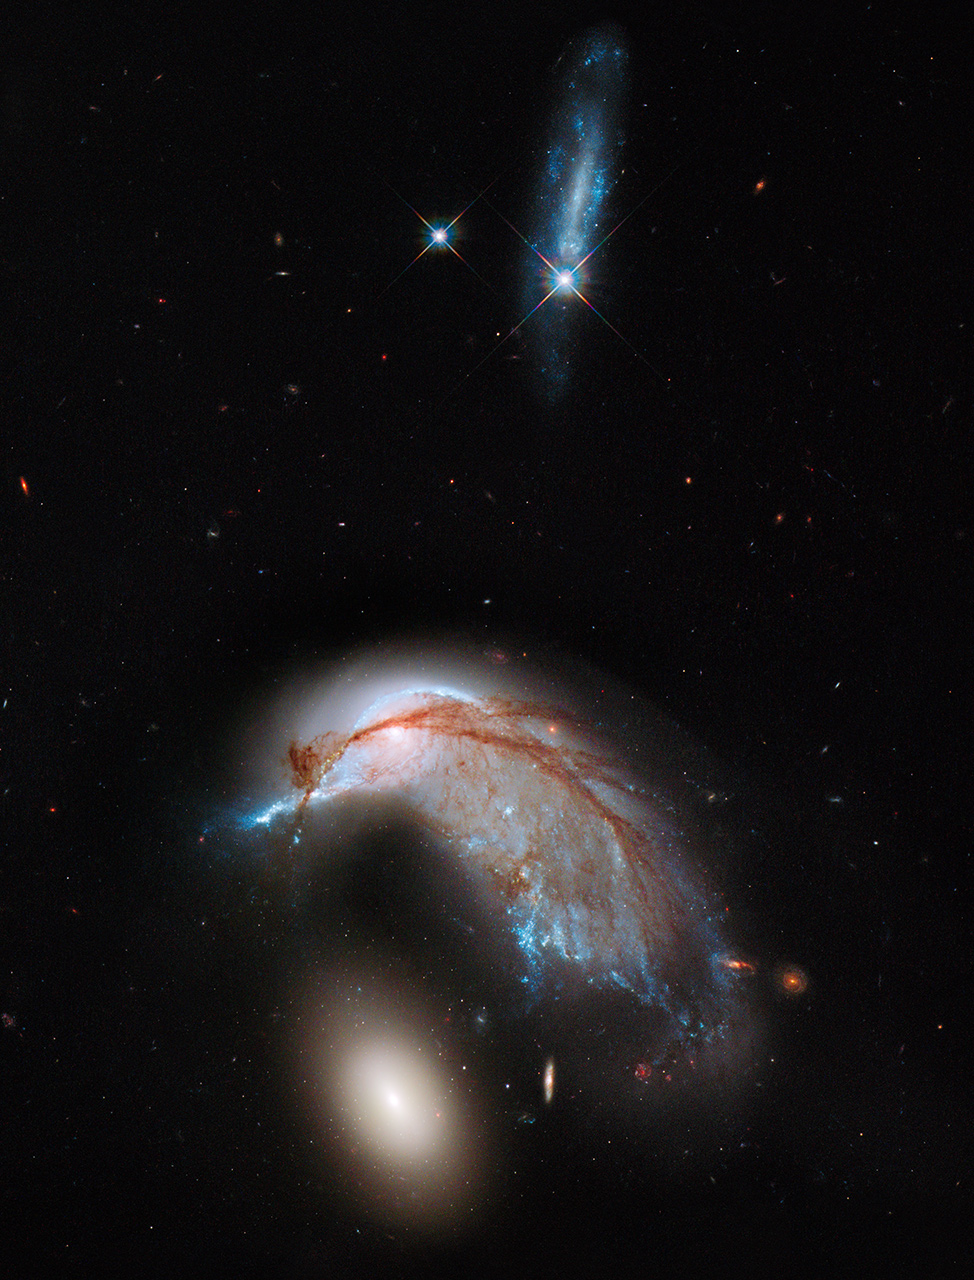 https://www.nasa.gov/sites/default/files/images/756581main_hubble_colliding_galaxies_full_full.jpg